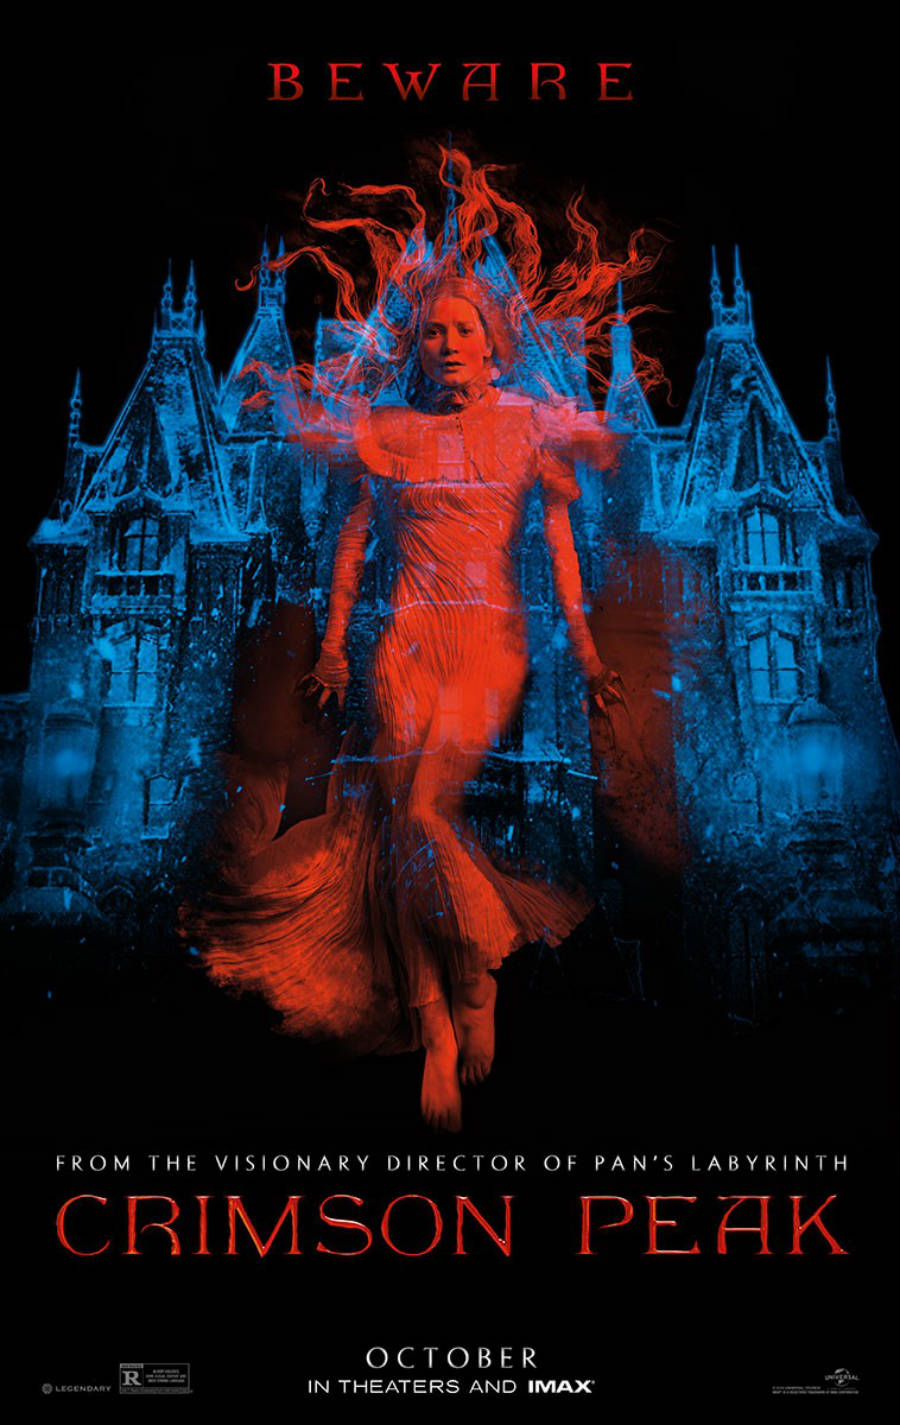 Poster design top 10 - Crimson Peak